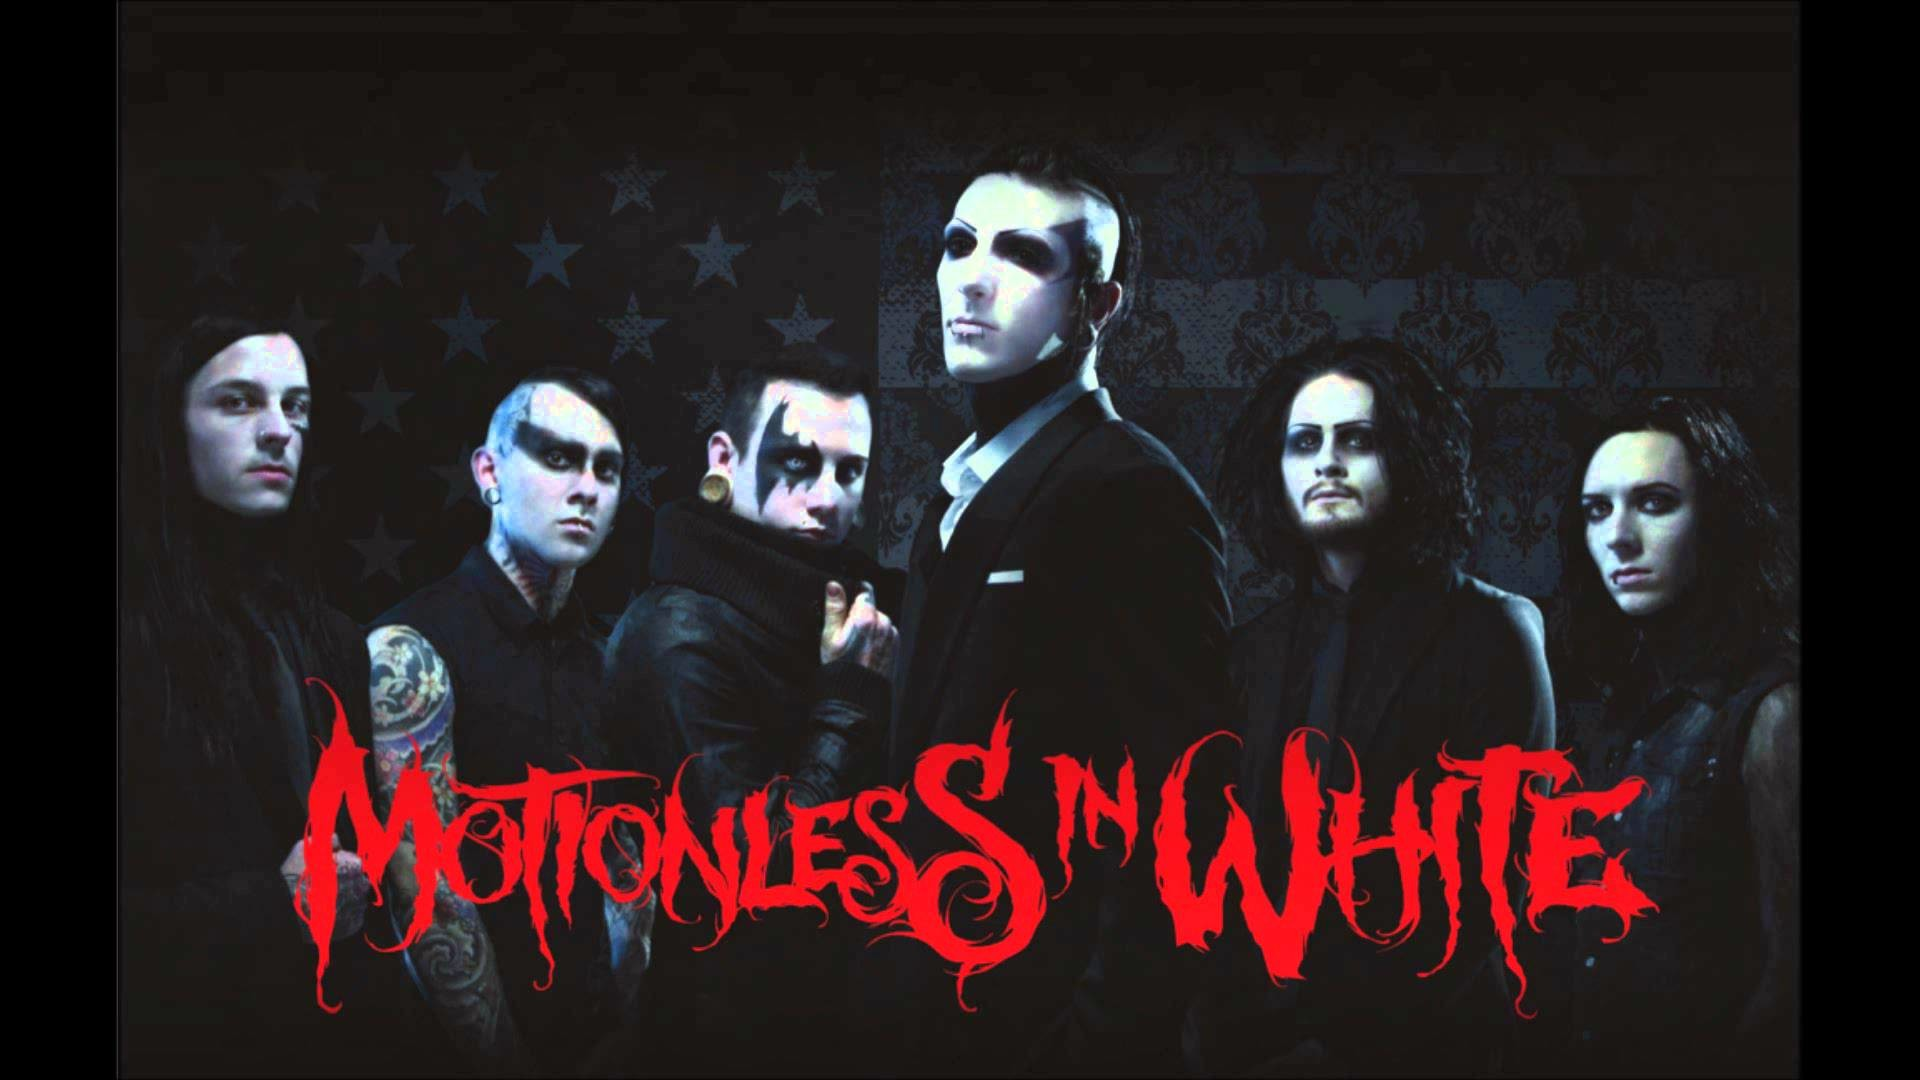 """Motionless In White – """"Puppets 2 (The Rain)"""" (DELUXE EDITION)"""